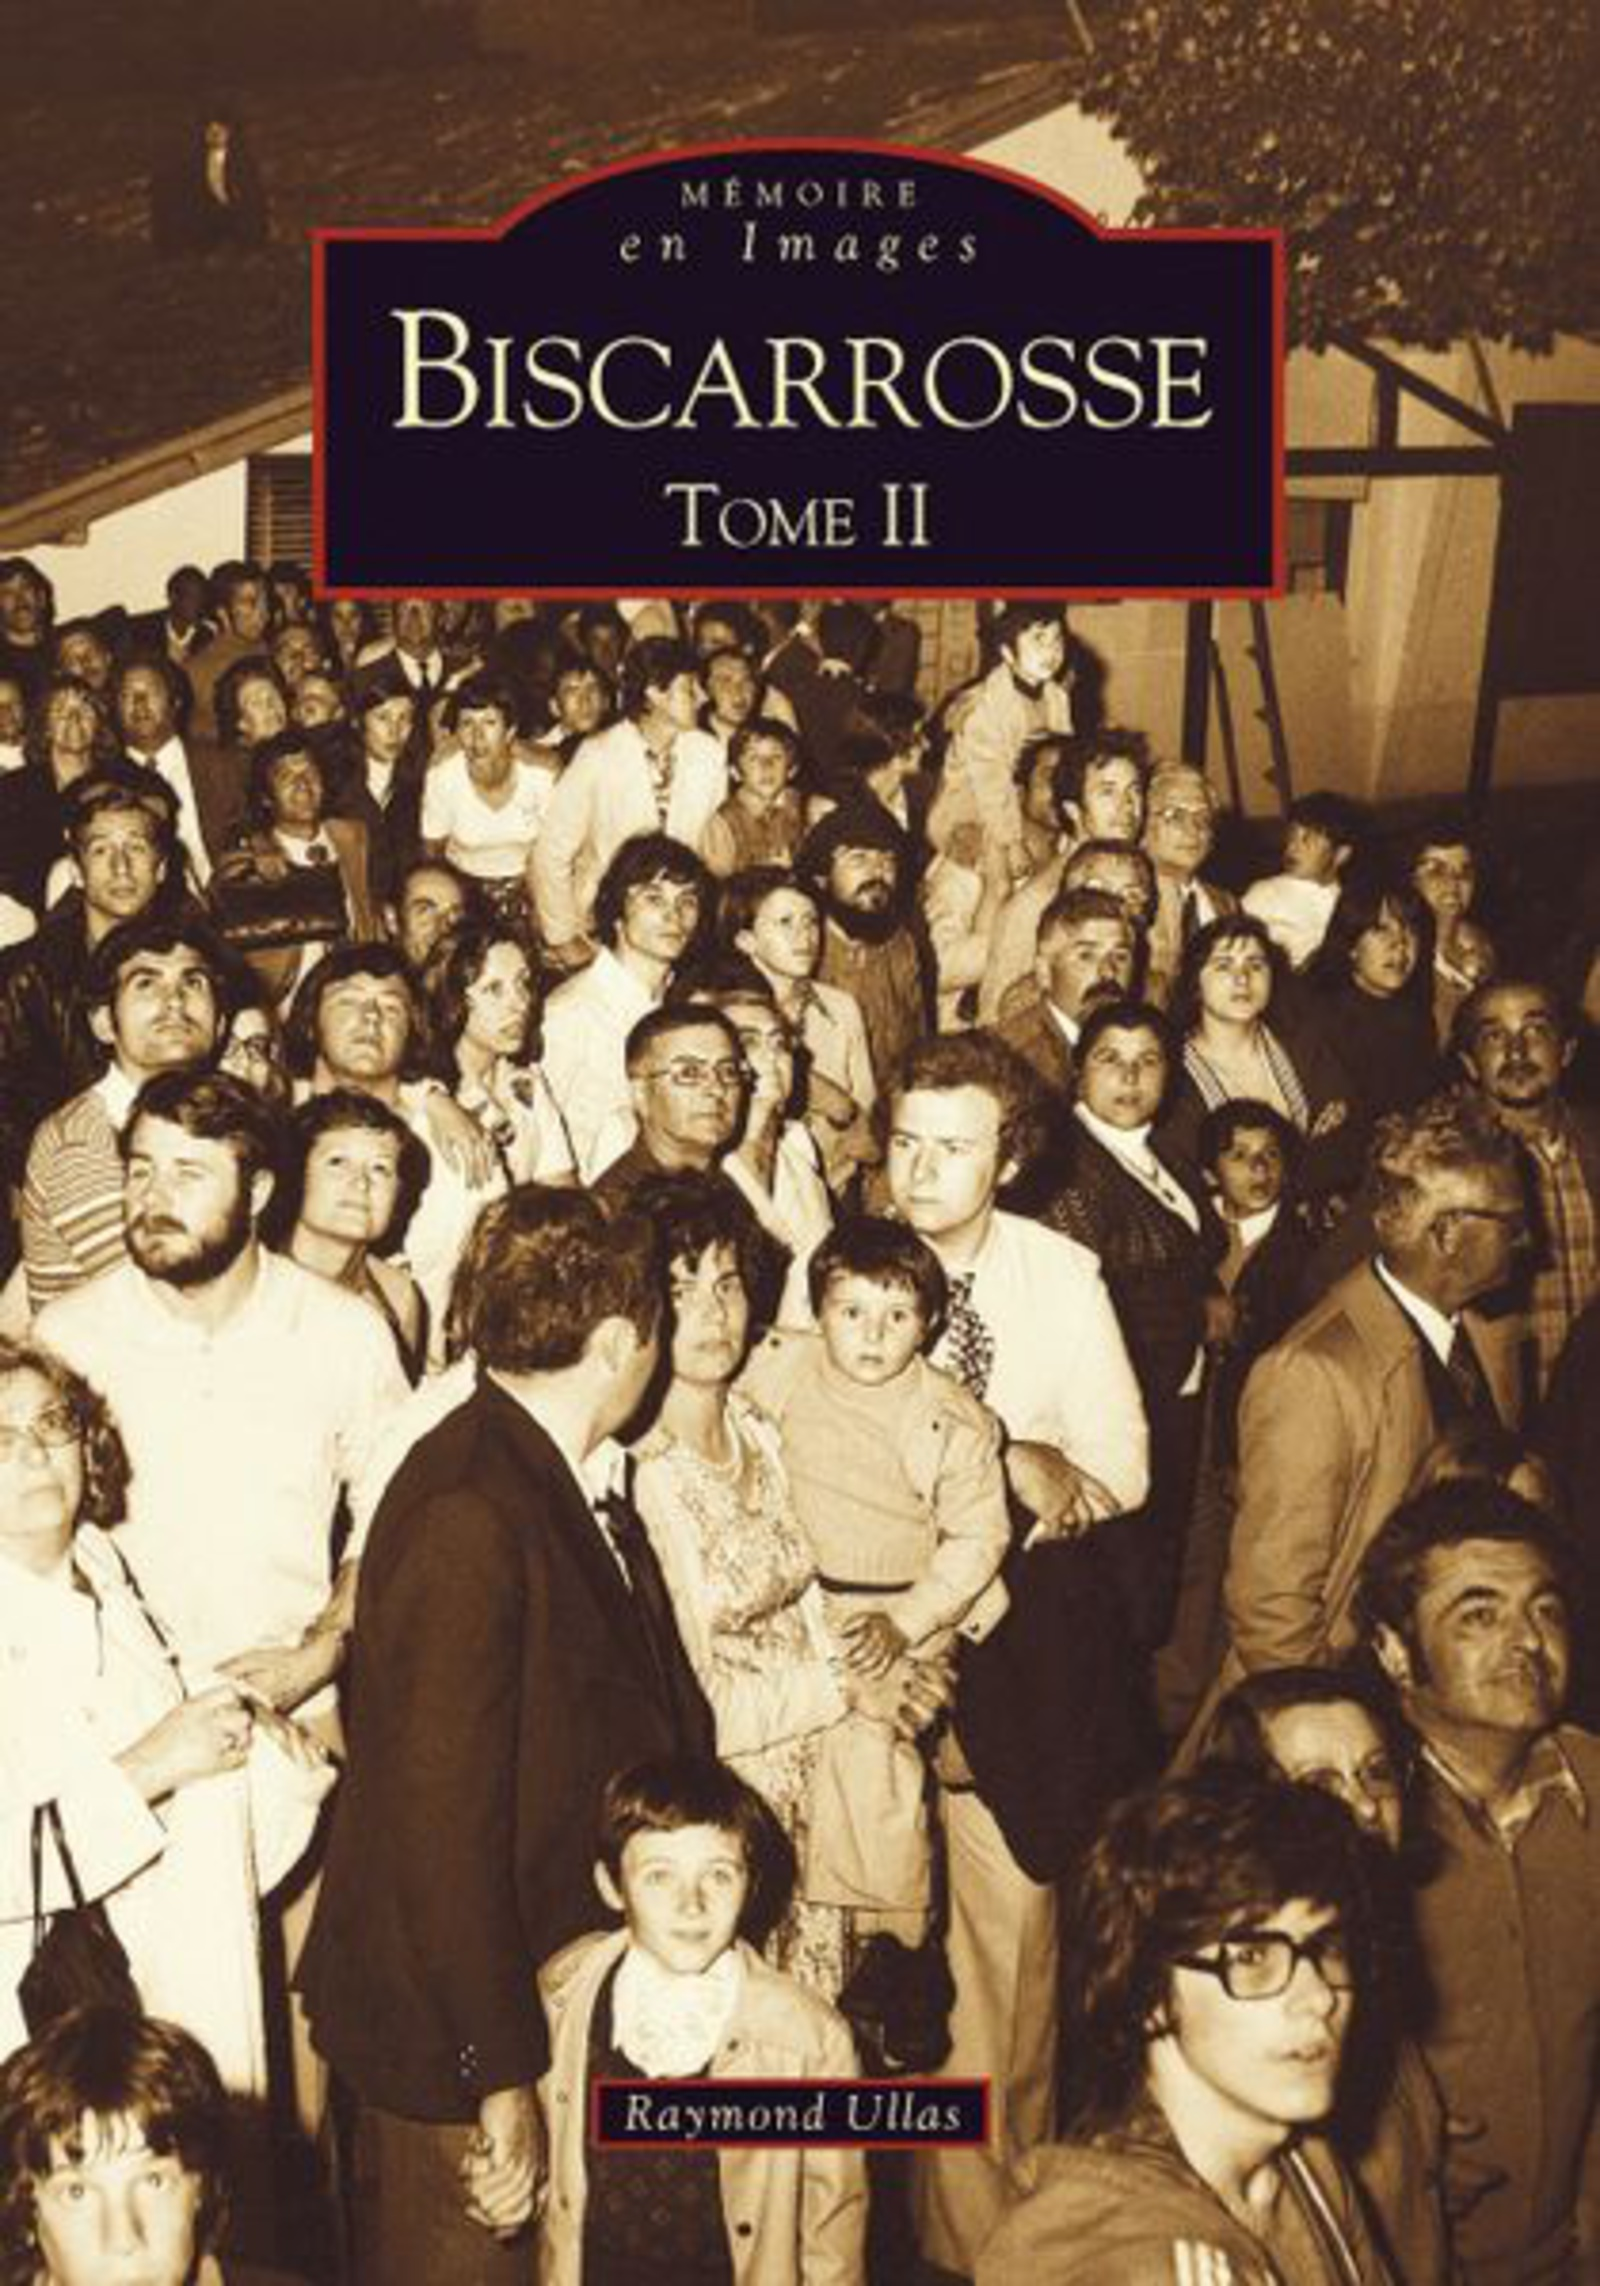 BISCARROSSE - TOME II